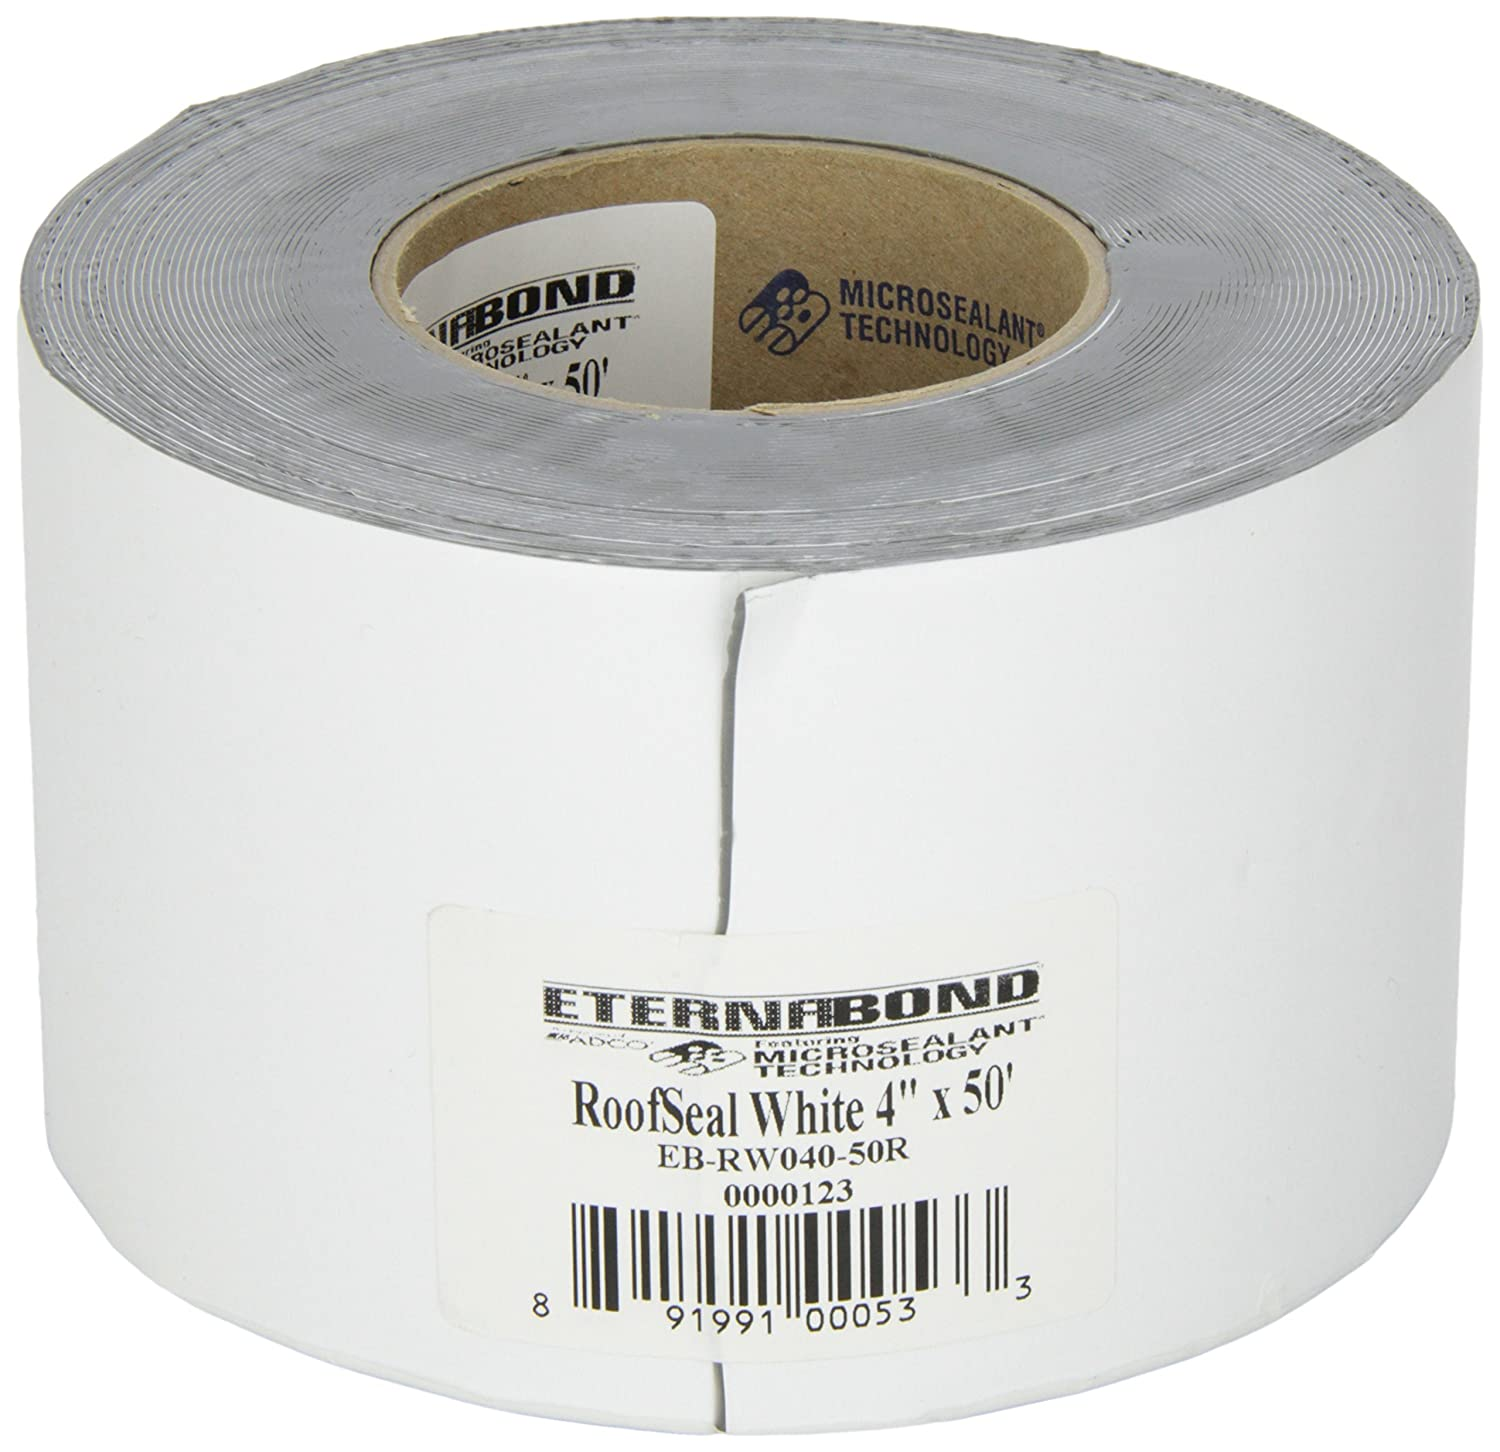 EternaBond RSW-4-50 RoofSeal Sealant Tape, White - 4